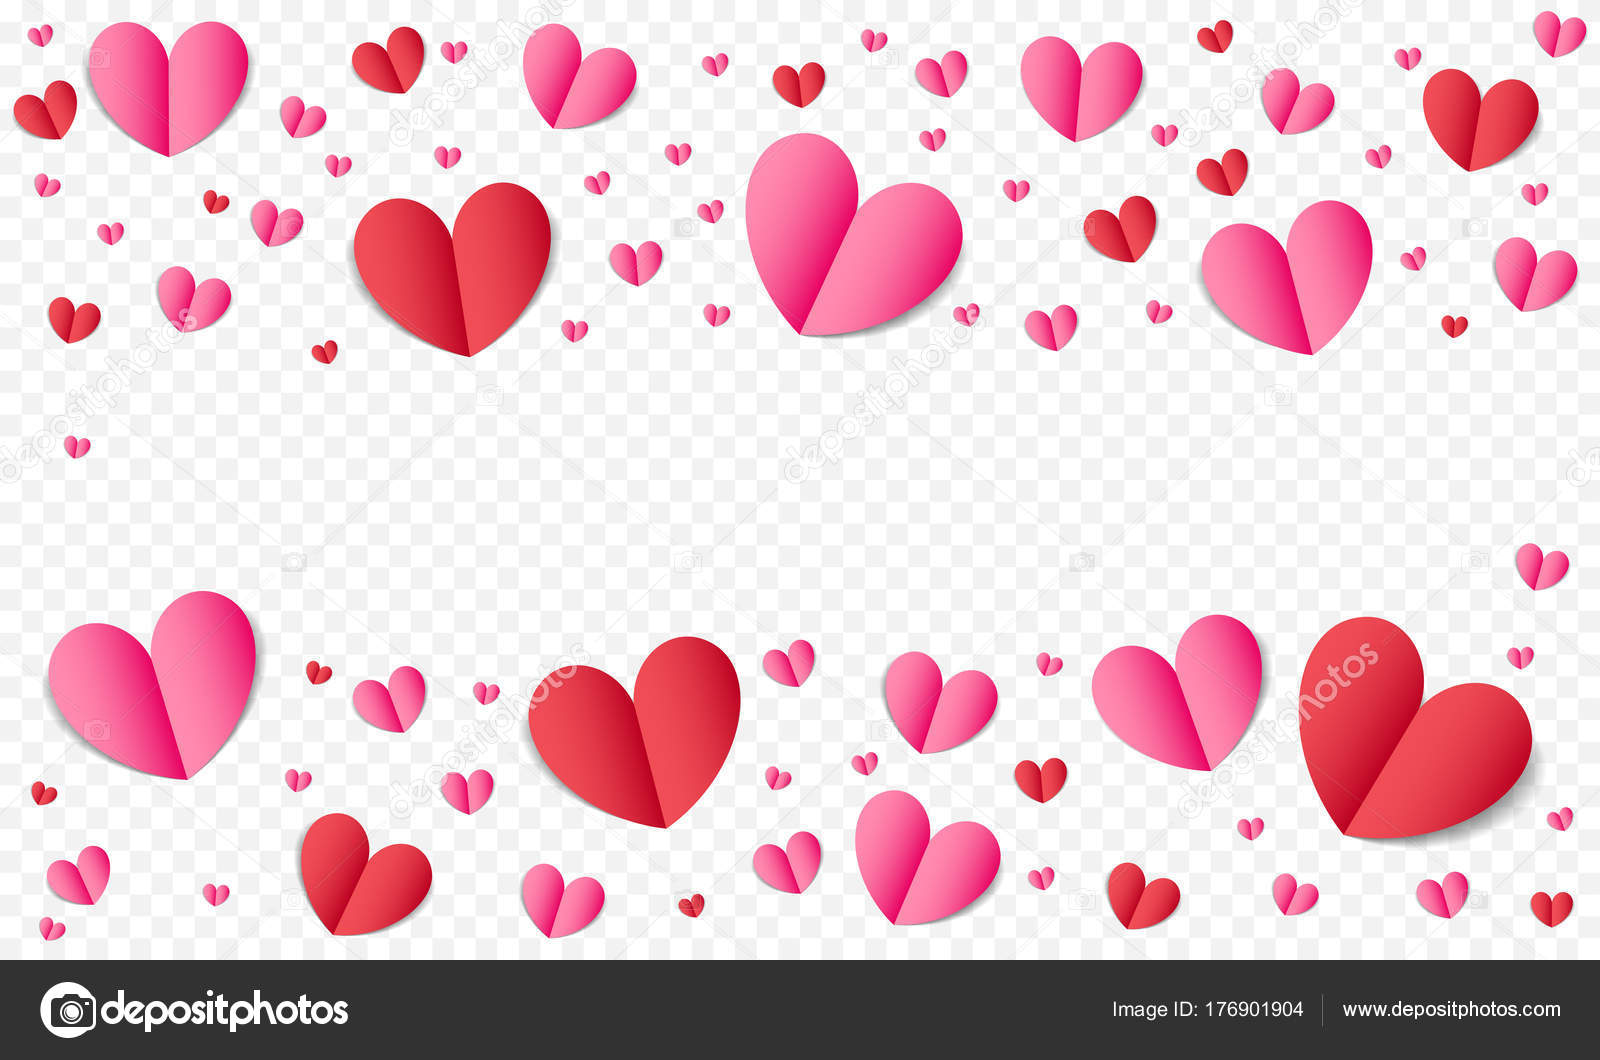 Hearts pattern background for valentines day or wedding romance and hearts pattern background for valentines day or wedding romance and save the date greeting card or invitation template stopboris Image collections